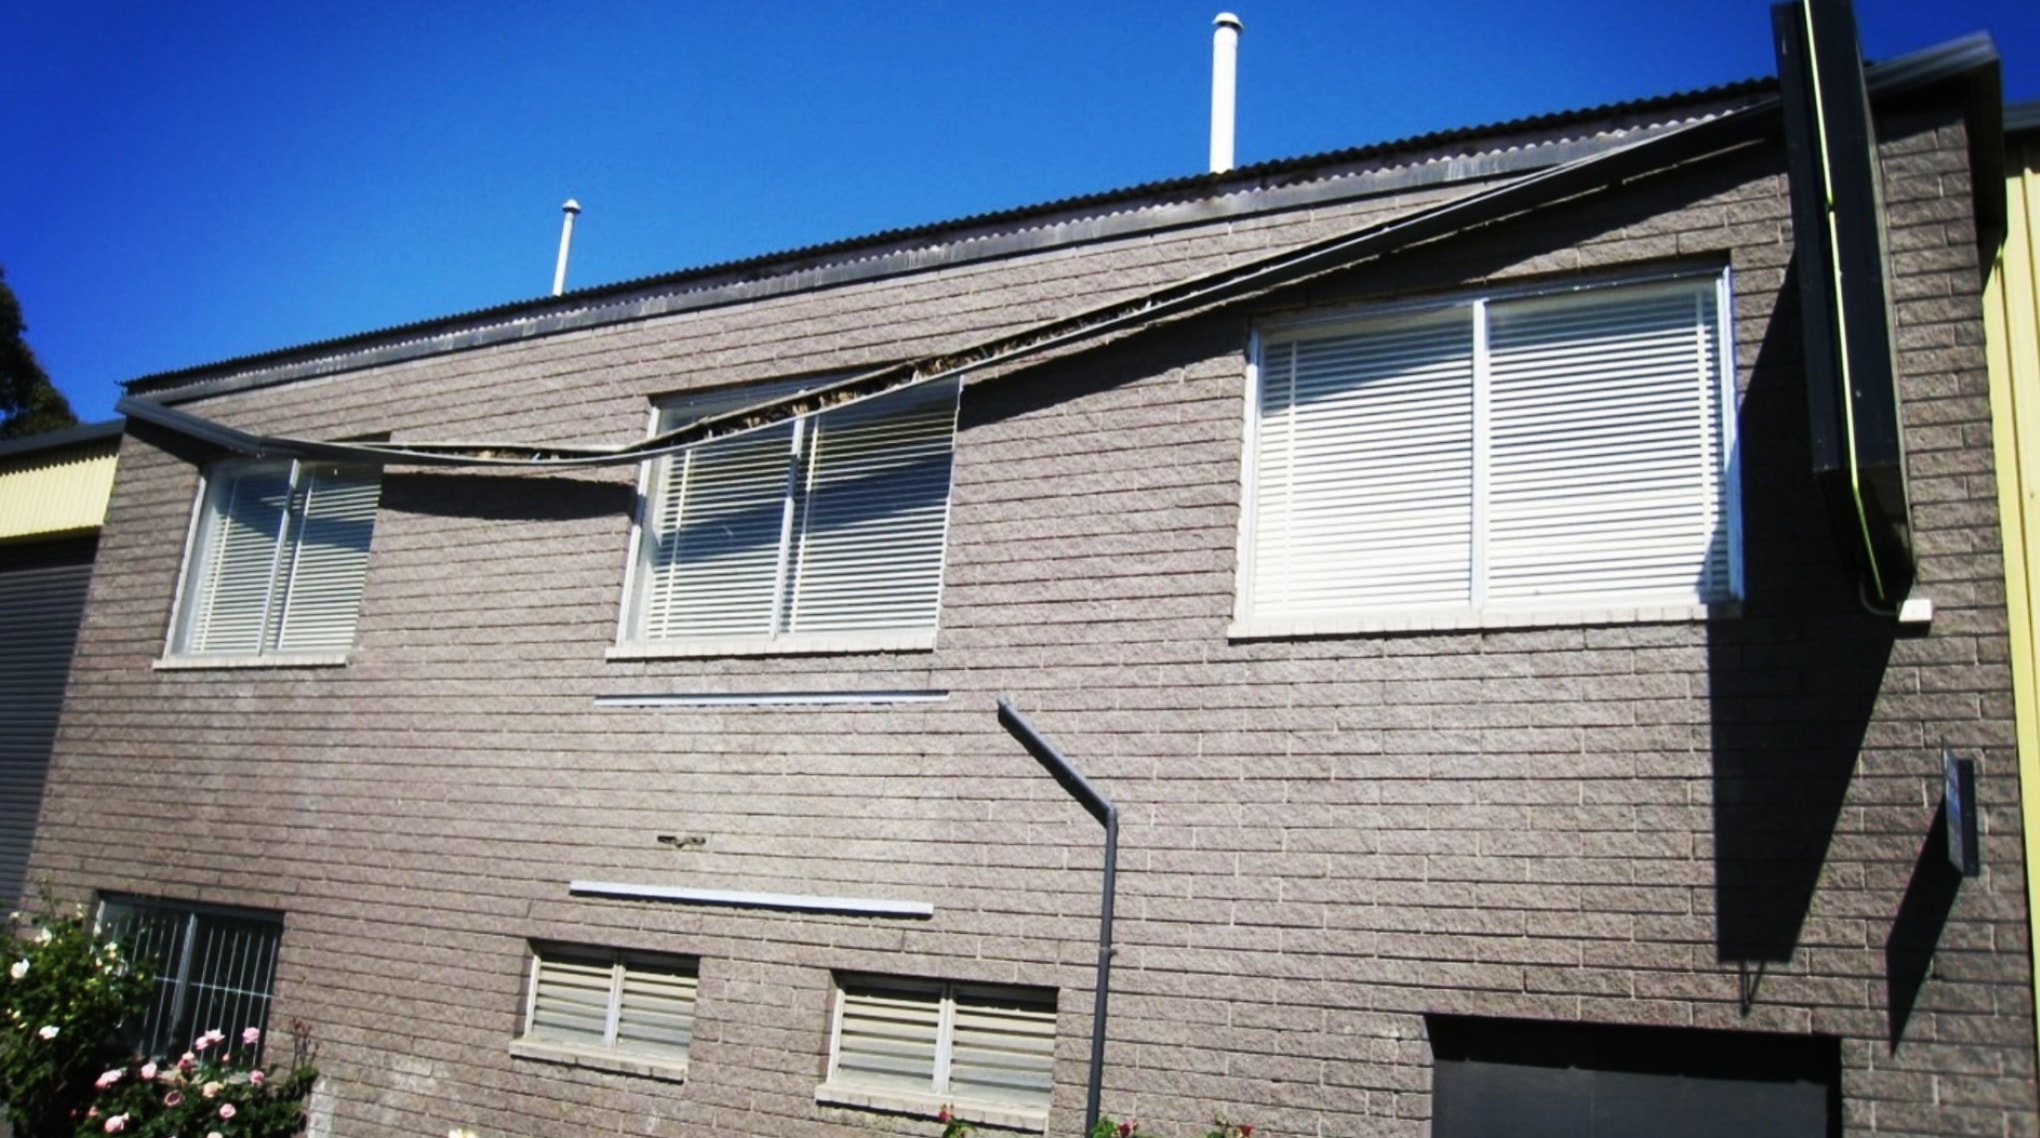 When your gutters get too full, collapsed drains and clogged pipes are NOT ideal!